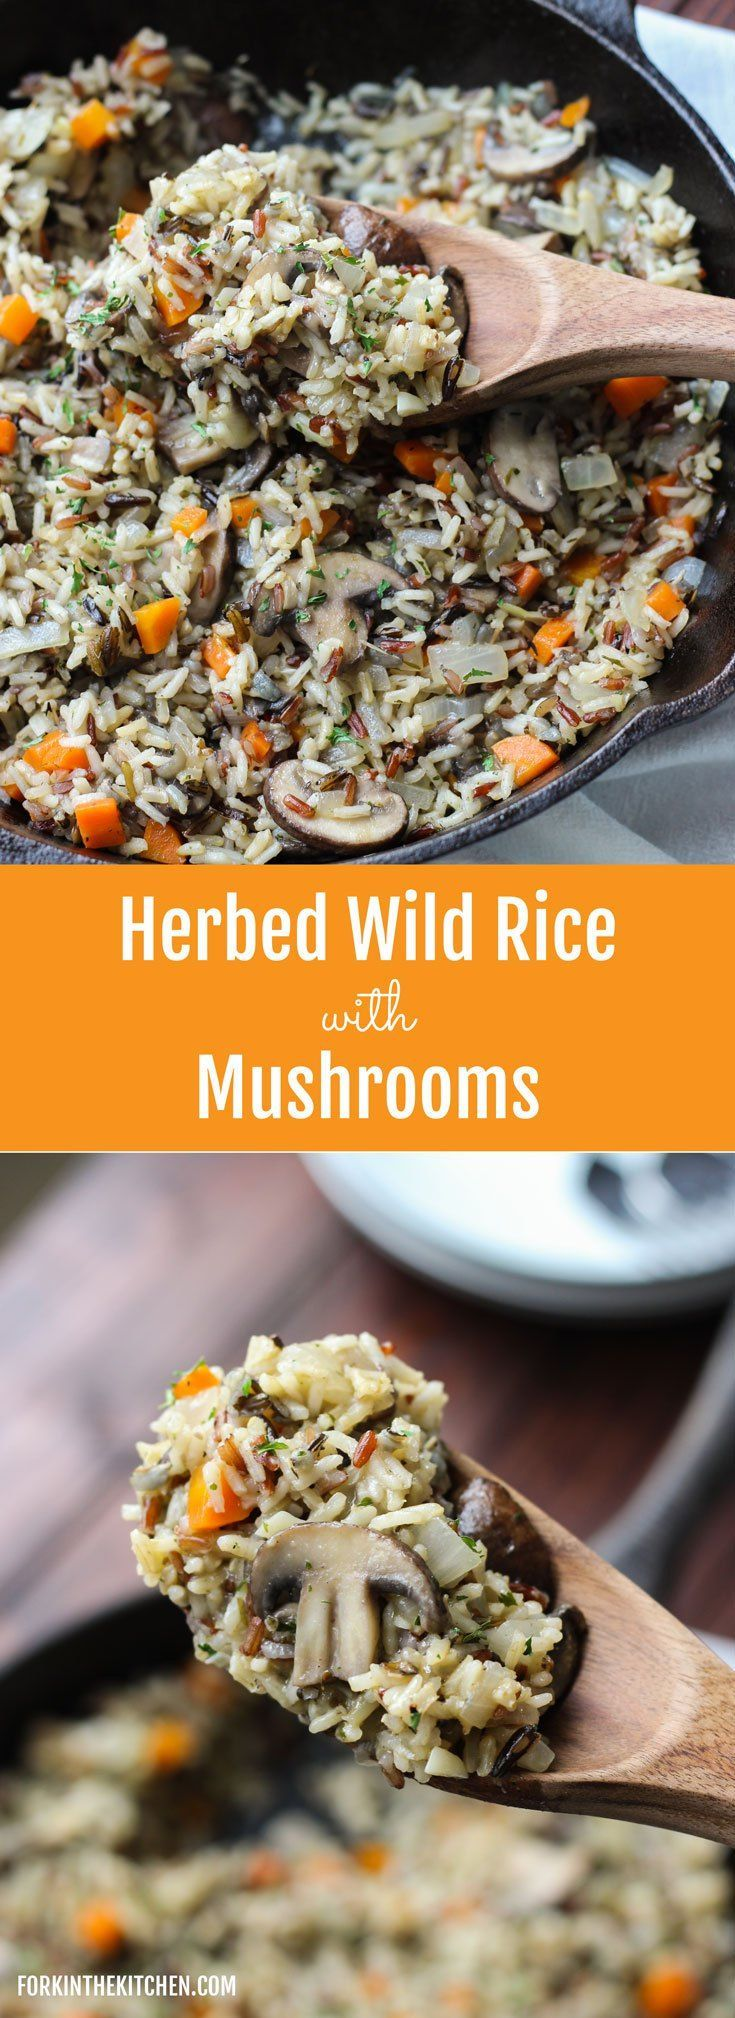 Herbed Wild Rice with Mushrooms - easy, healthy, and incredibly delicious!